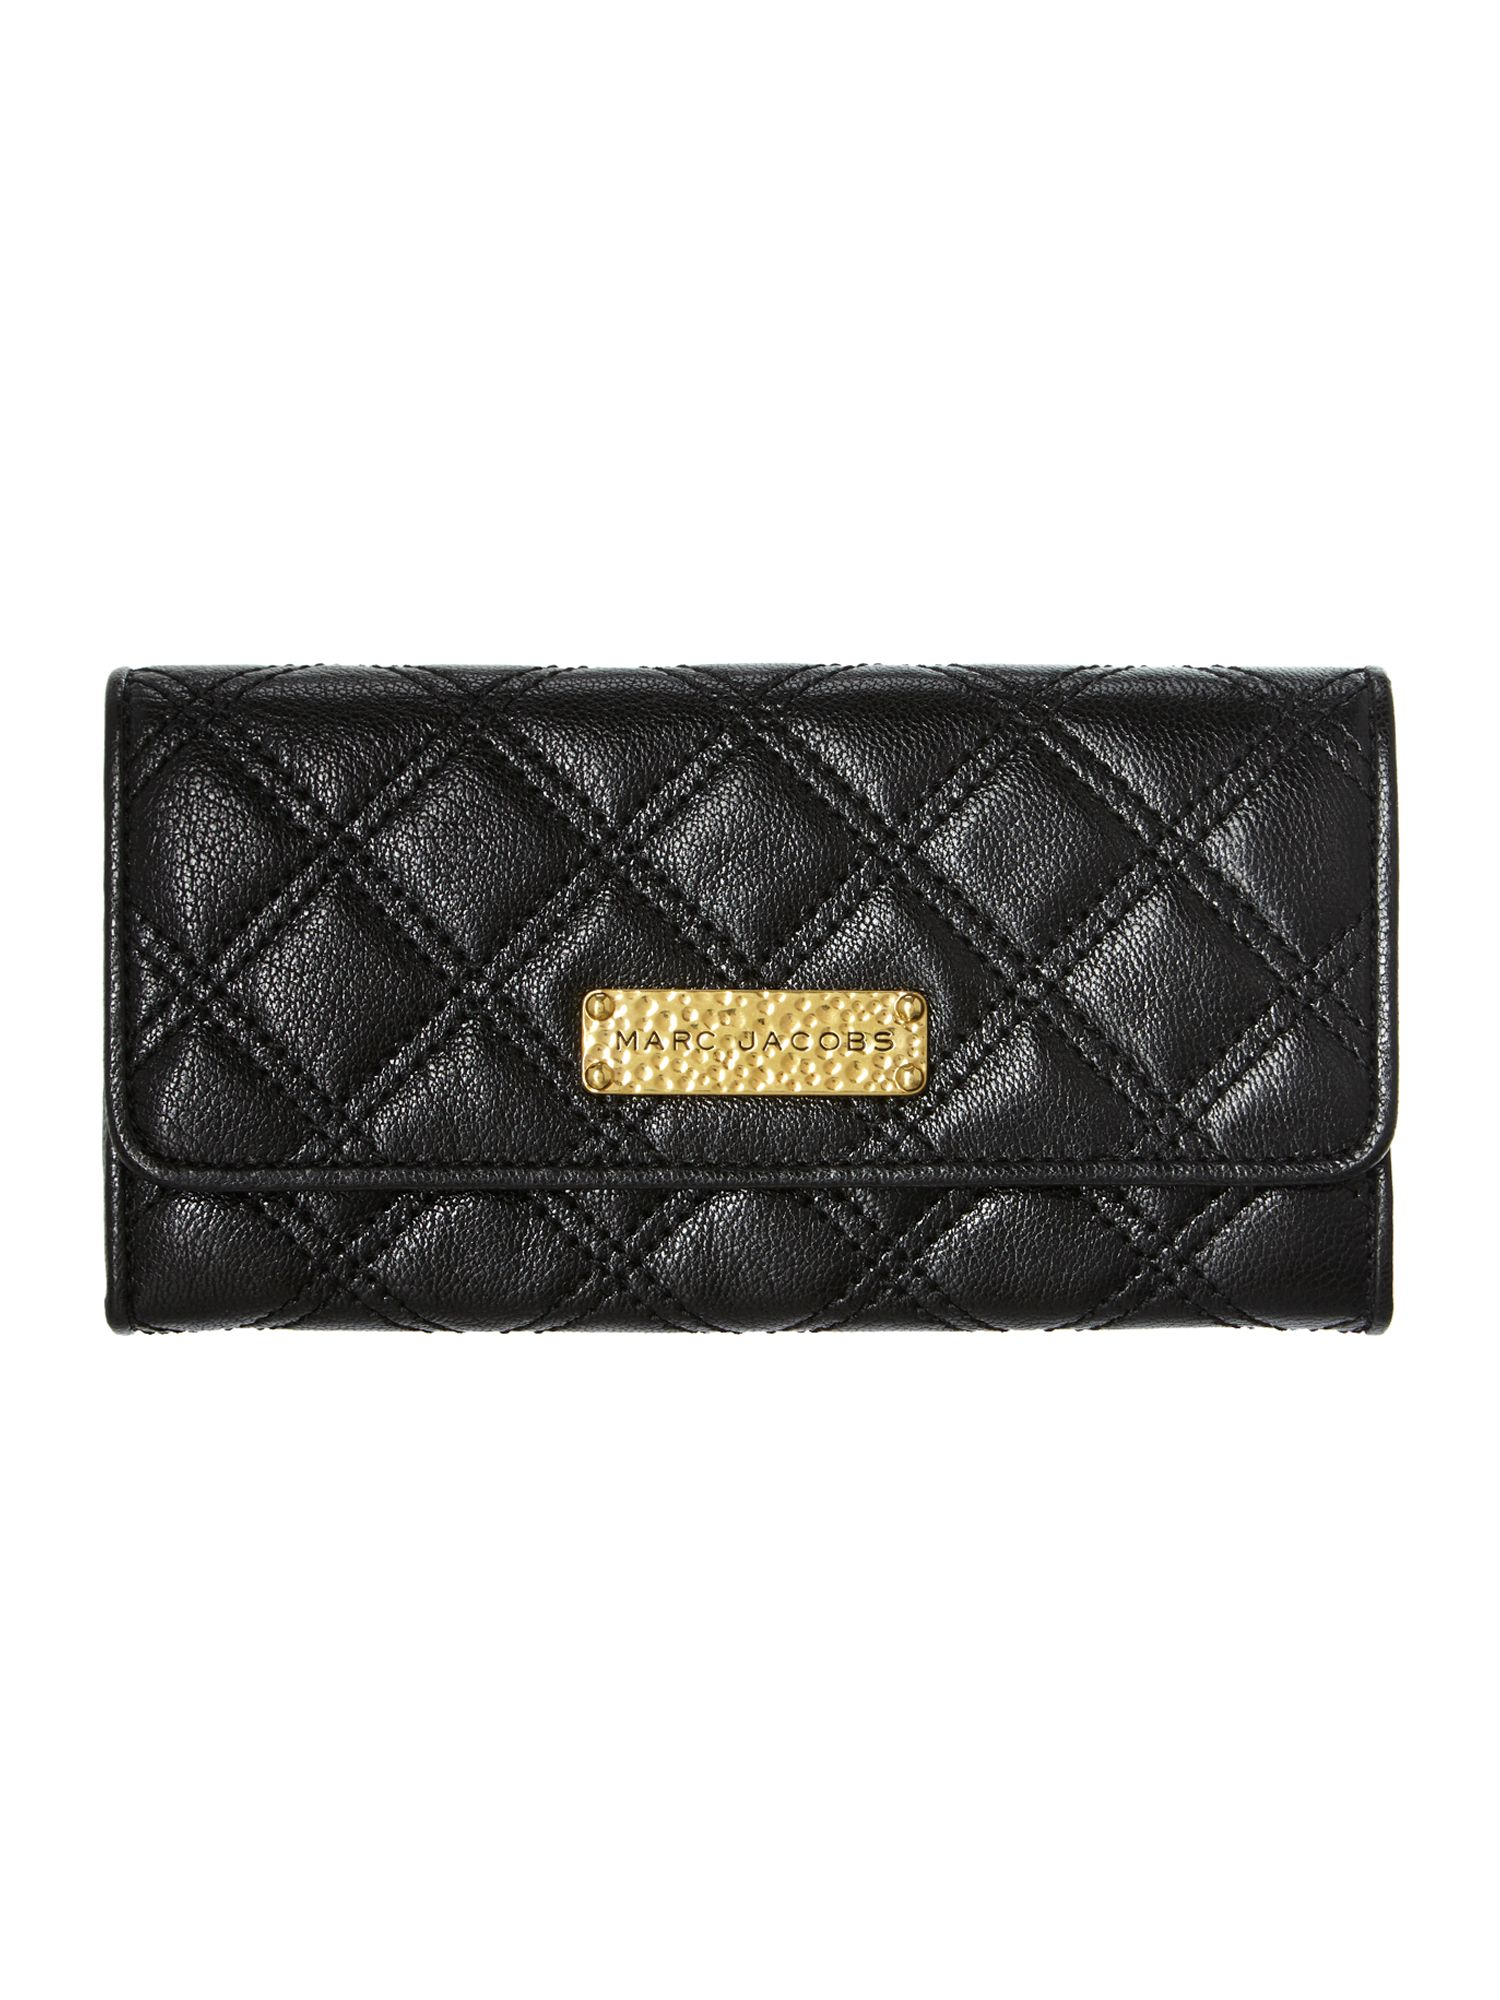 Iconic quilted large flapover purse